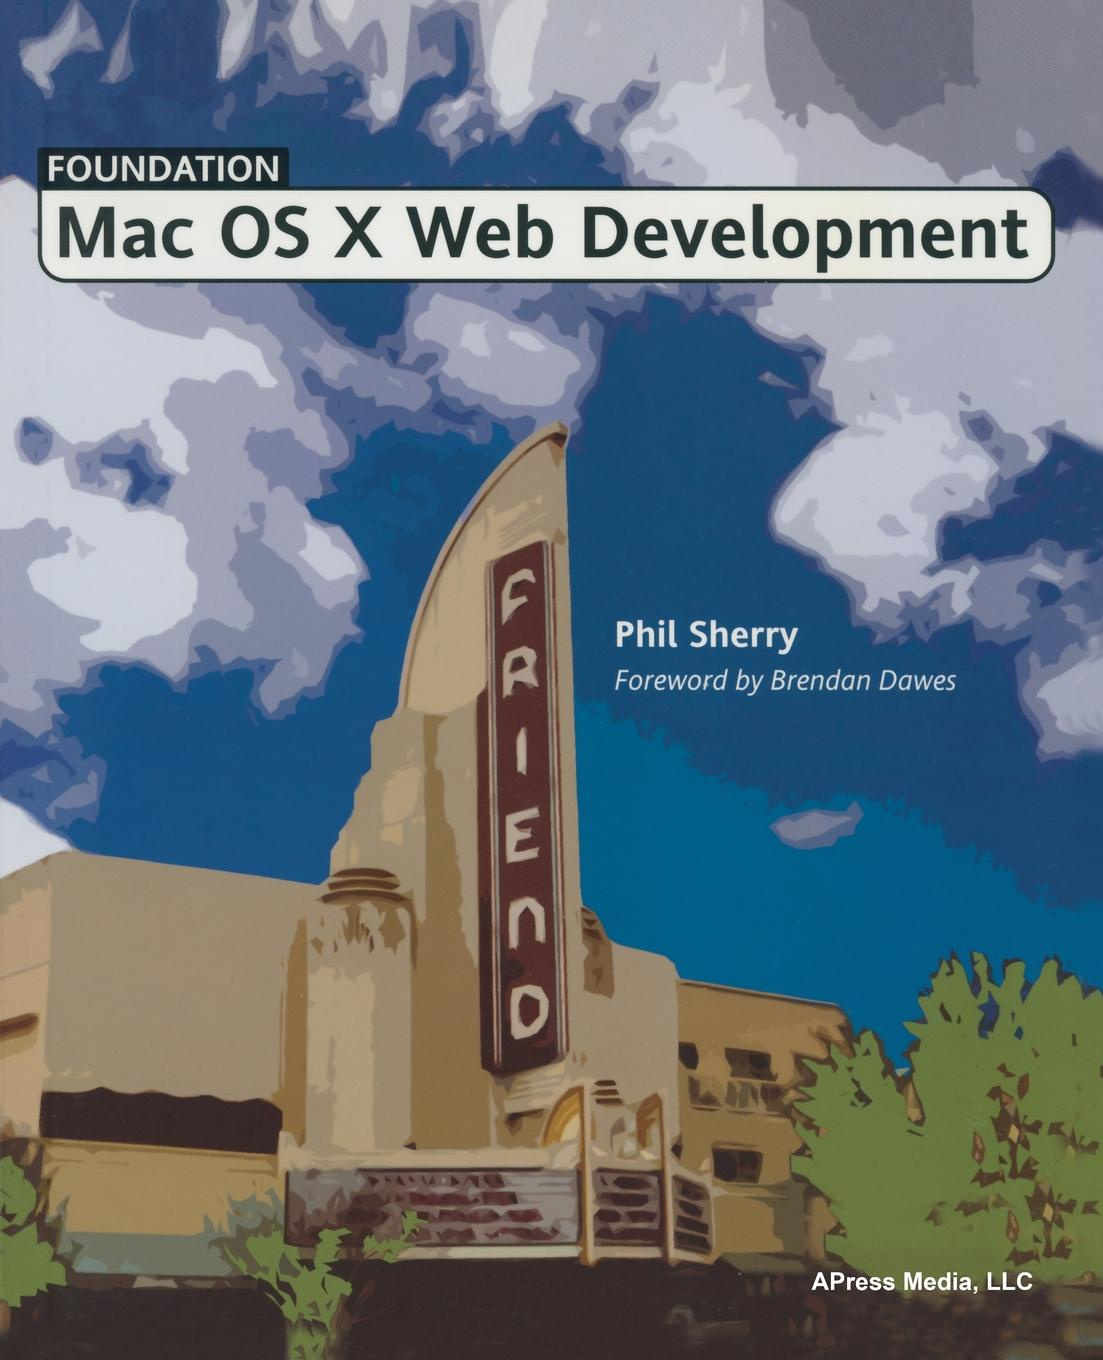 Phil Sherry Foundation Mac OS X Web Development foundation web design